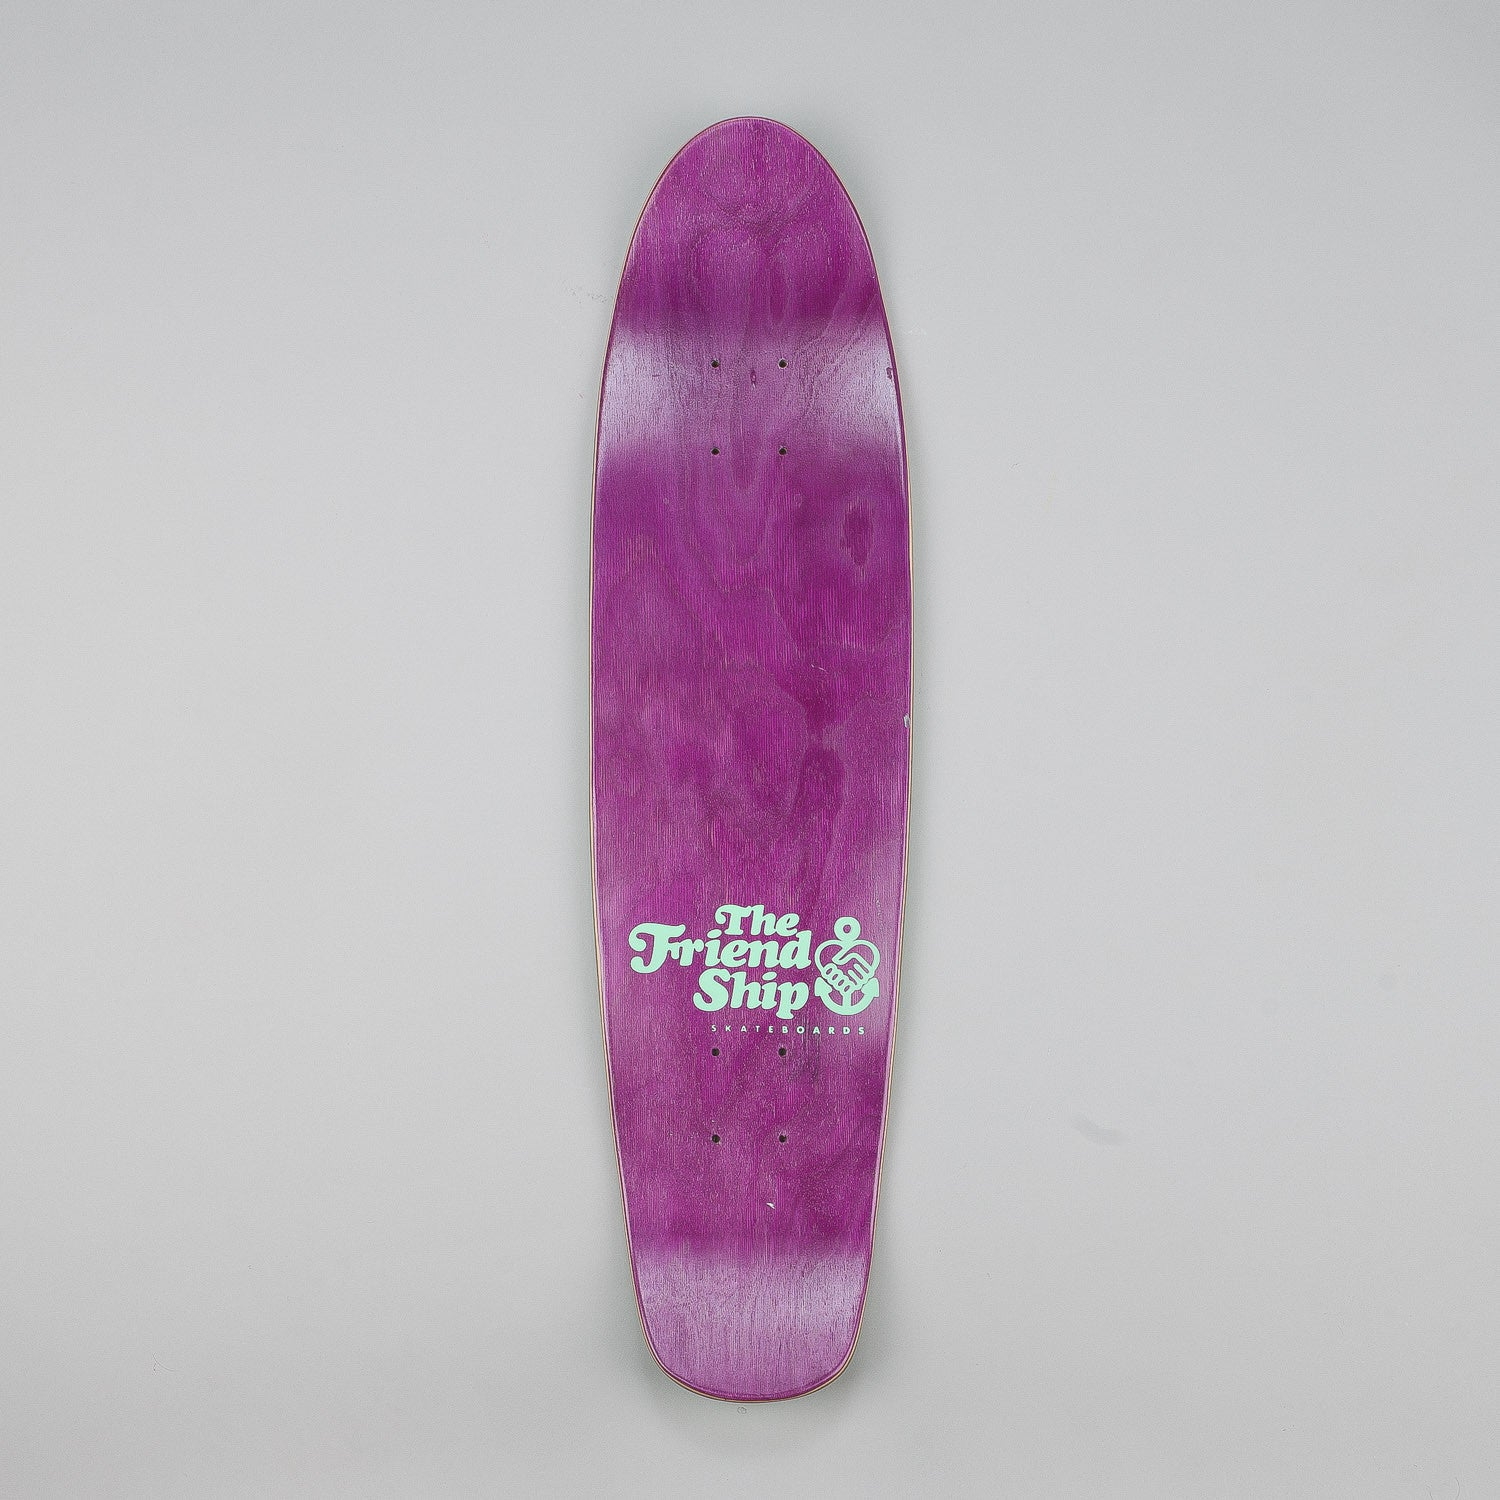 The Friend Ship Mondays Cruiser Deck